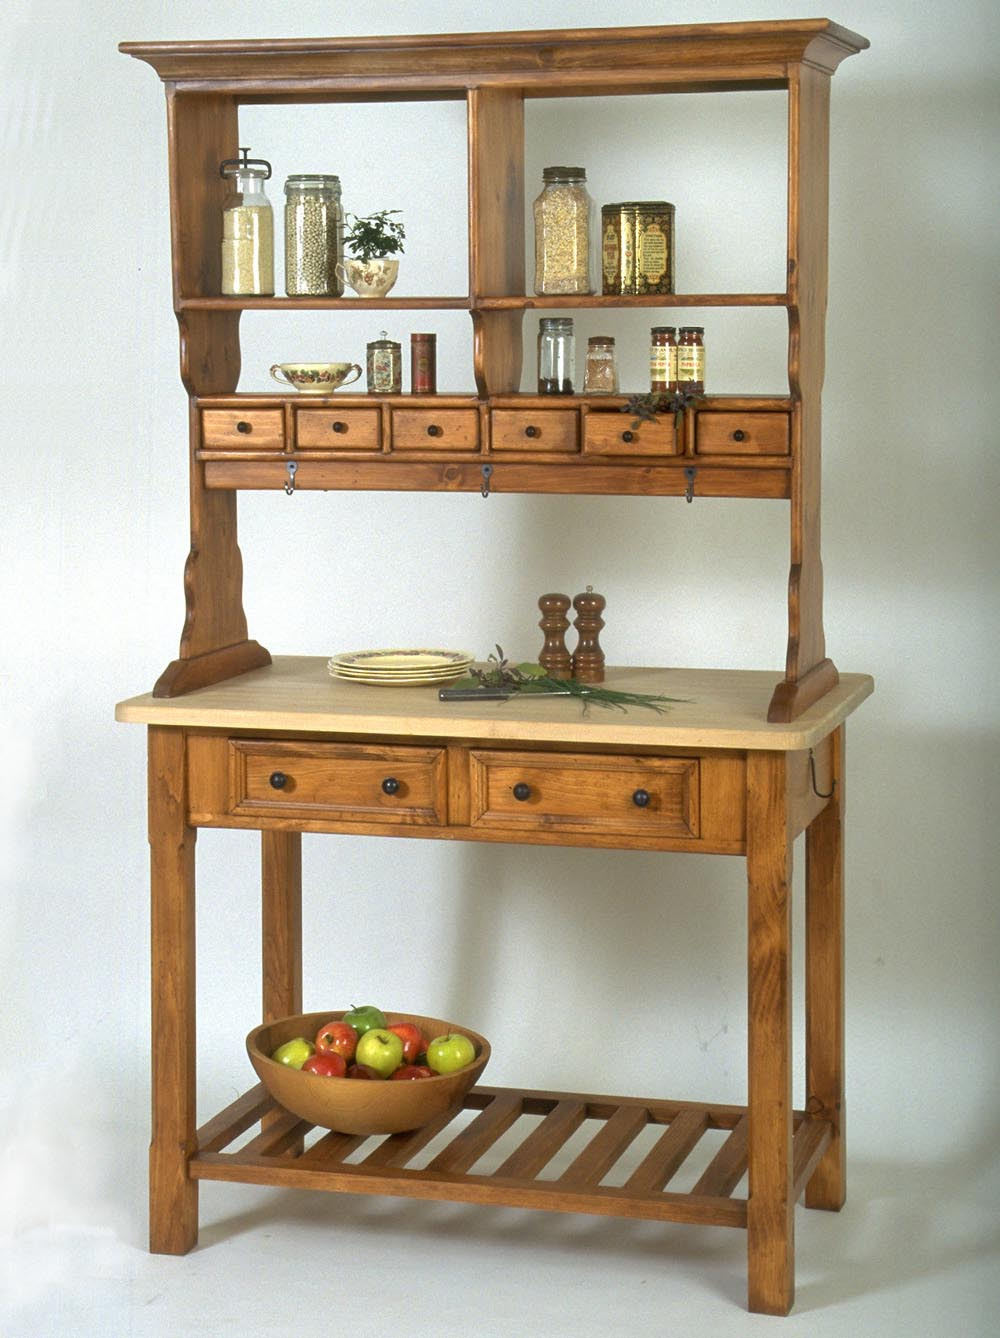 kitchen workbench dining set southern pine w butcher block top american country